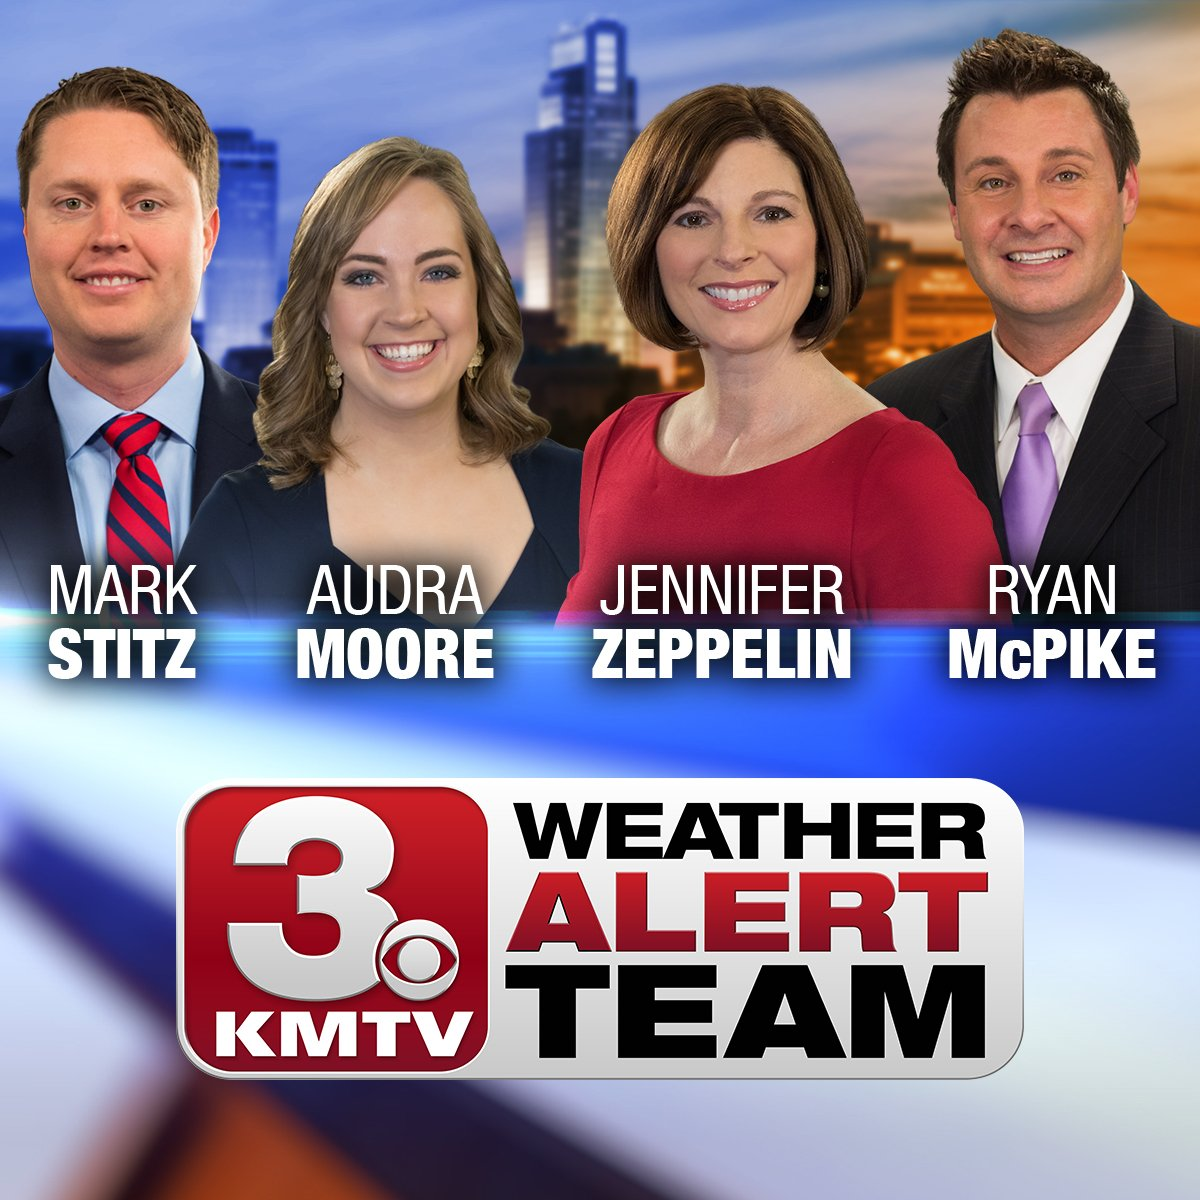 KMTV weathercasters